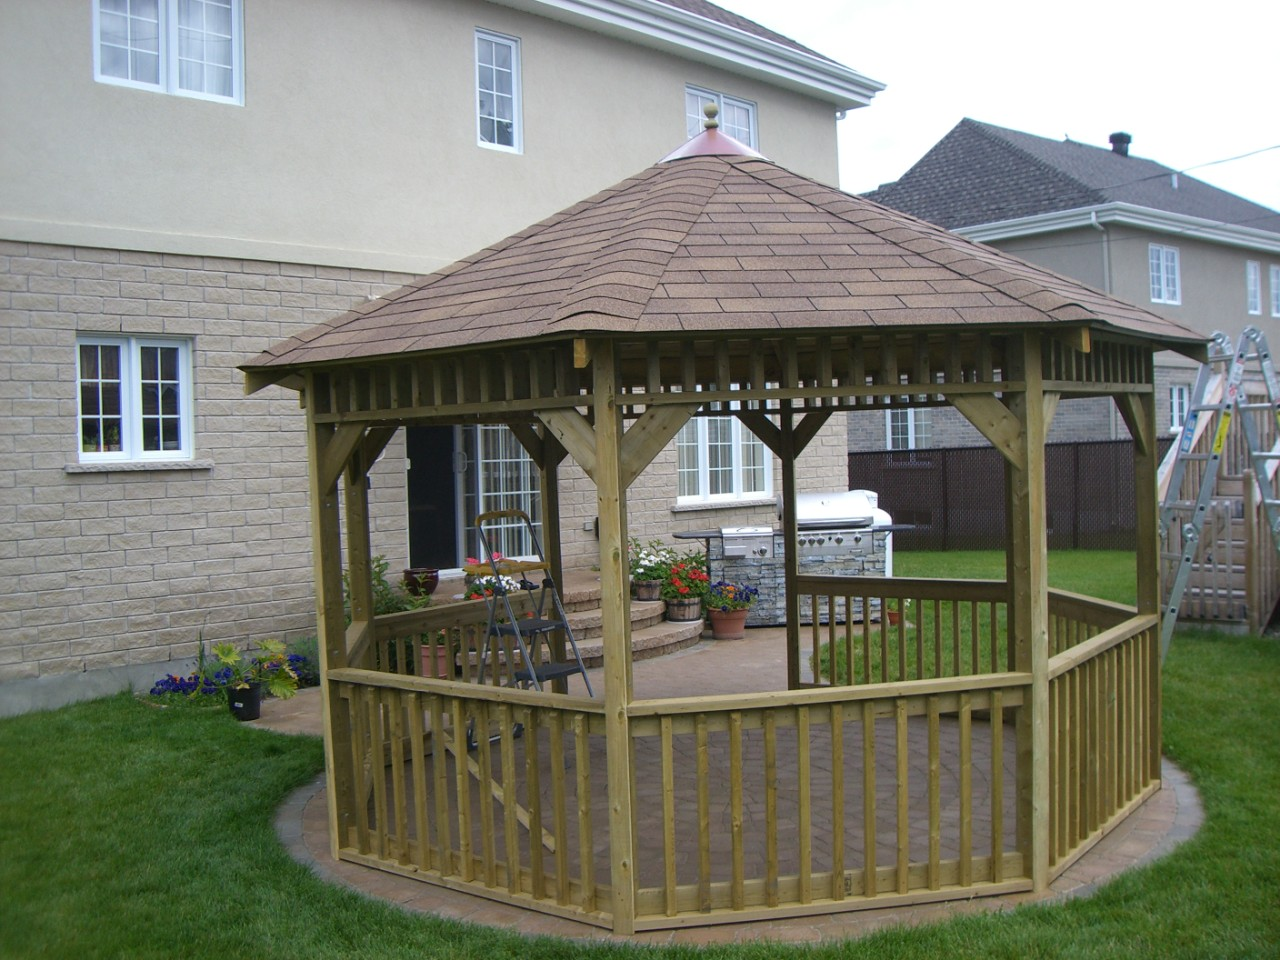 Rectangular Gazebo Plans Pdf